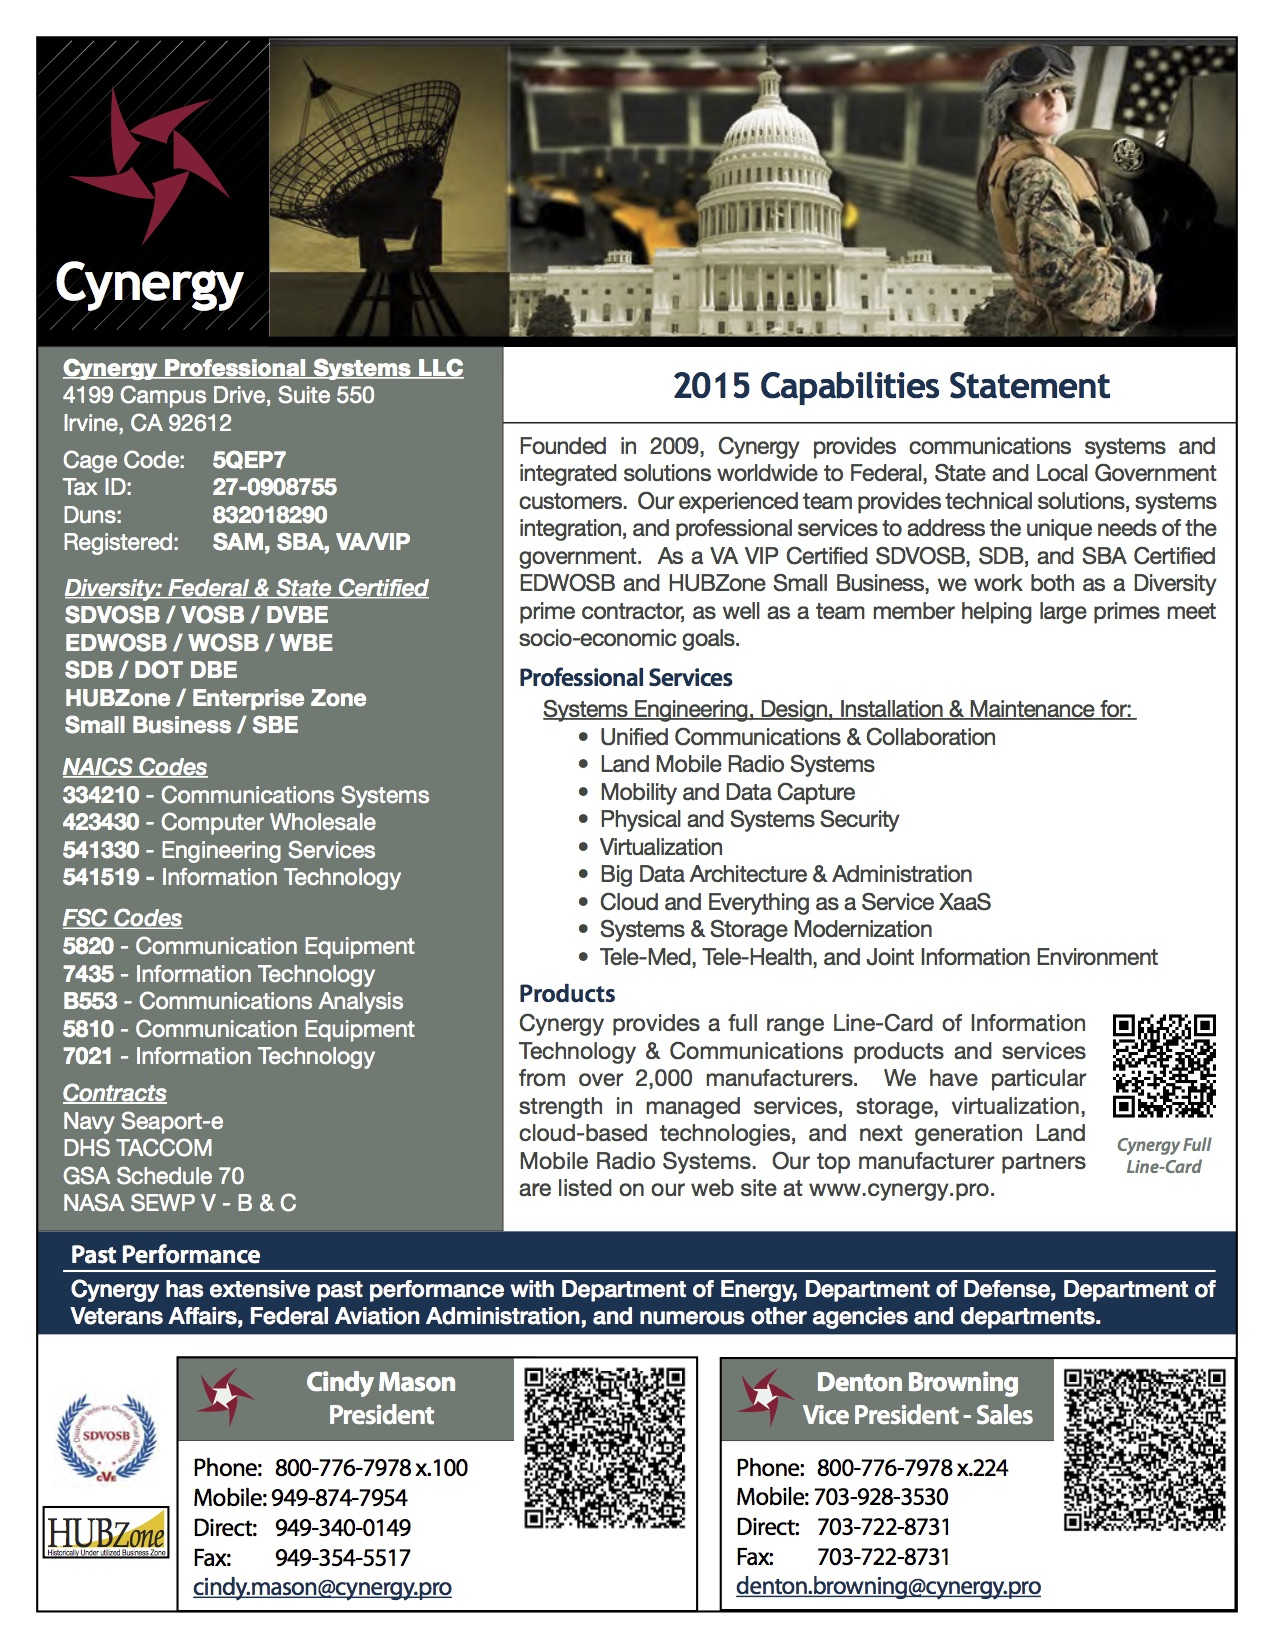 Cynergy-Capabilities2015